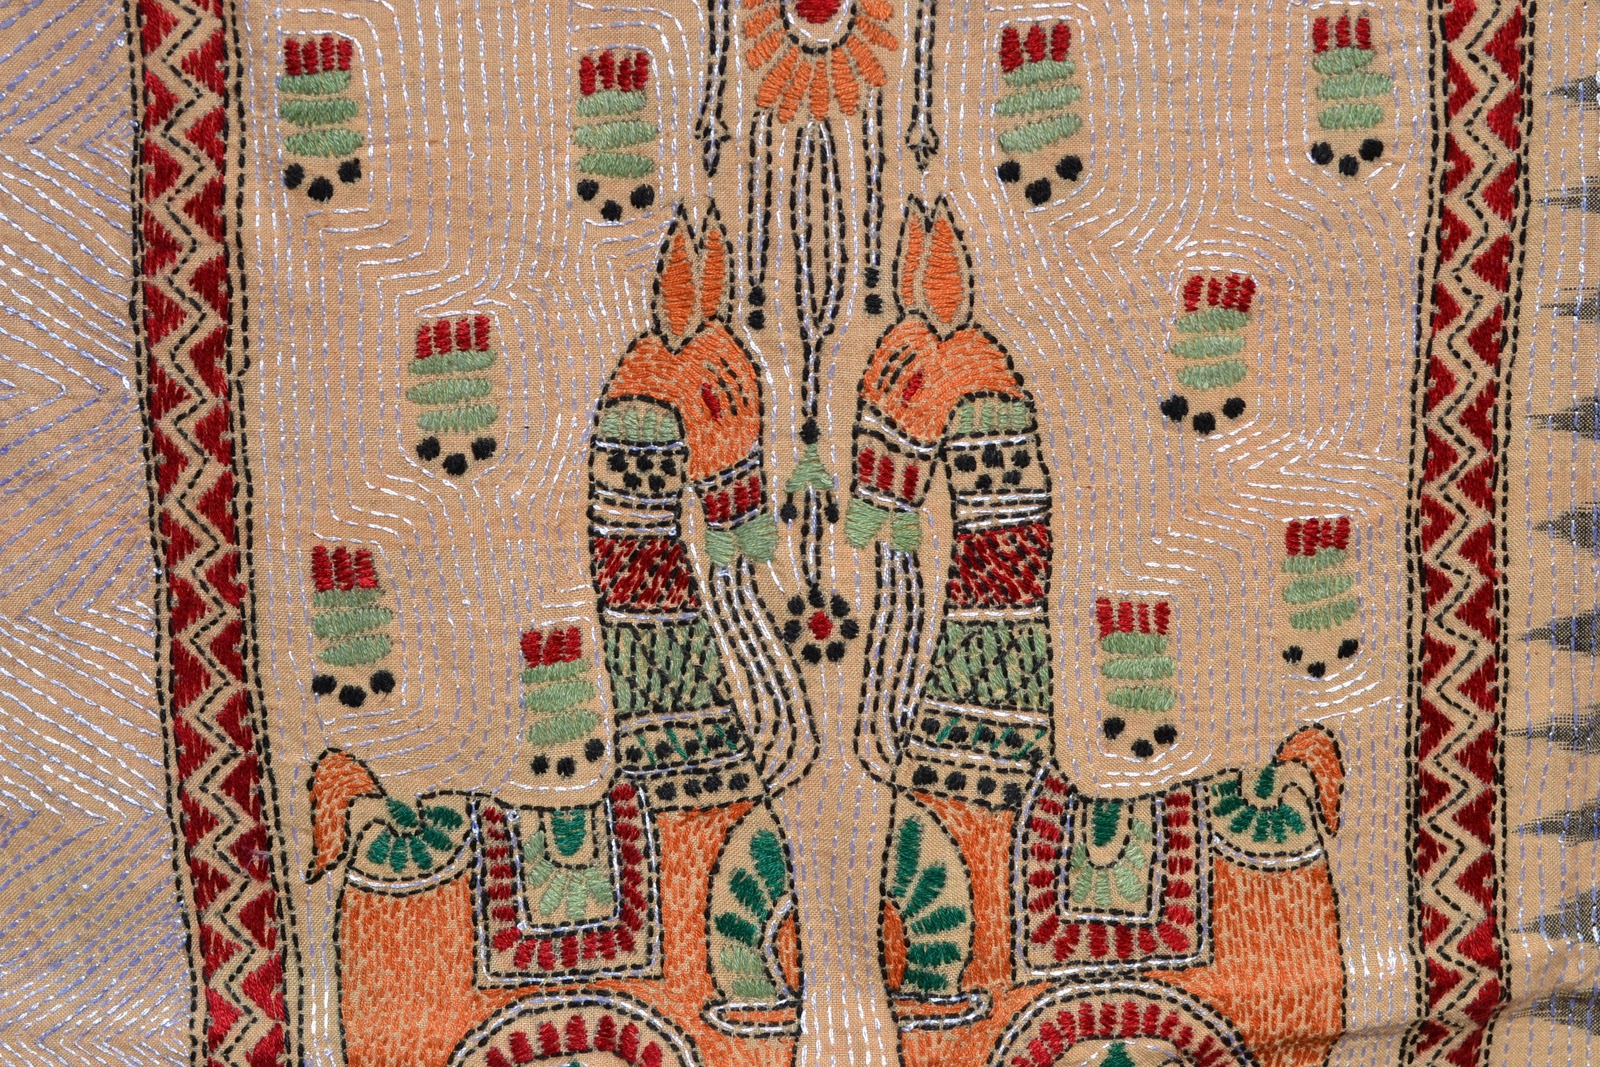 Kantha Traditional Embroidery From India Nidhi Saxena S Blog